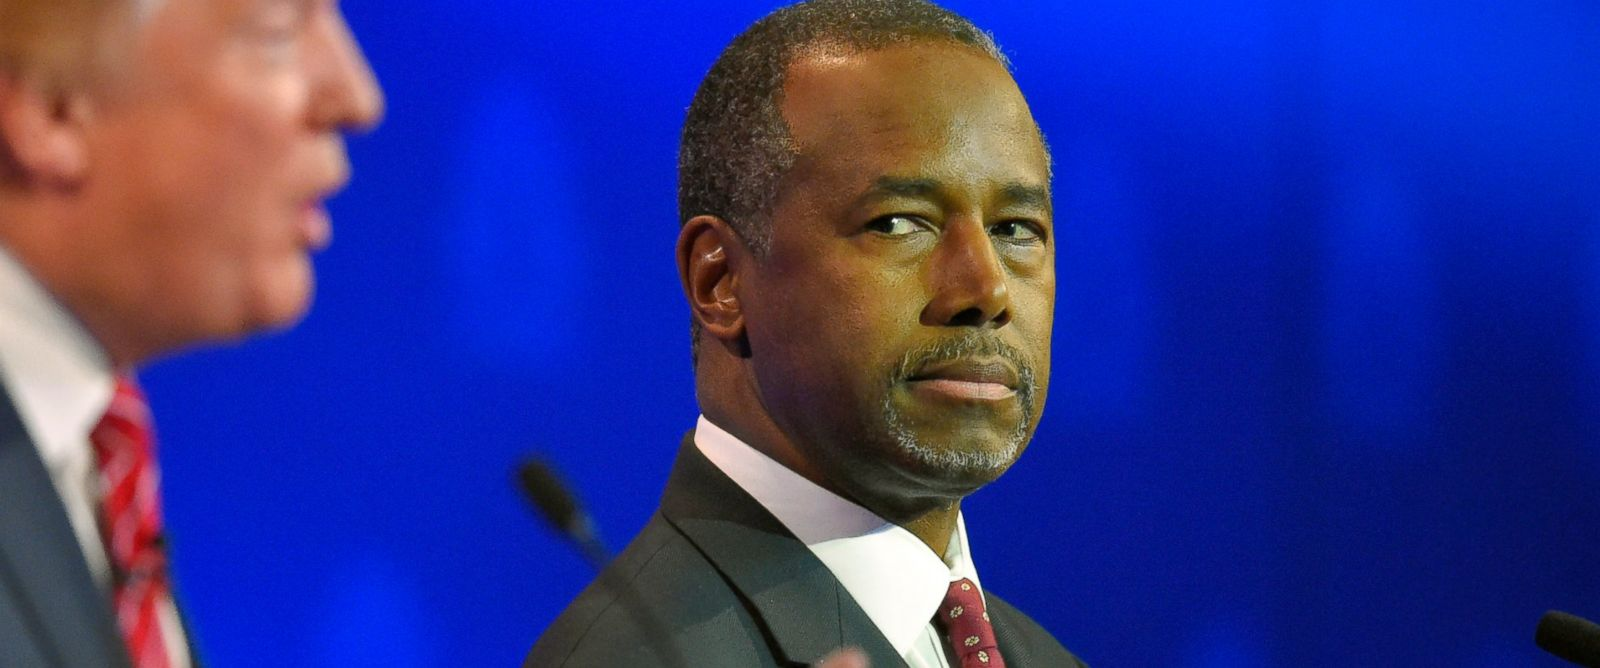 PHOTO: Ben Carson, right, watches as Donald Trump speaks during the CNBC Republican presidential debate at the University of Colorado, Oct. 28, 2015, in Boulder, Colo.